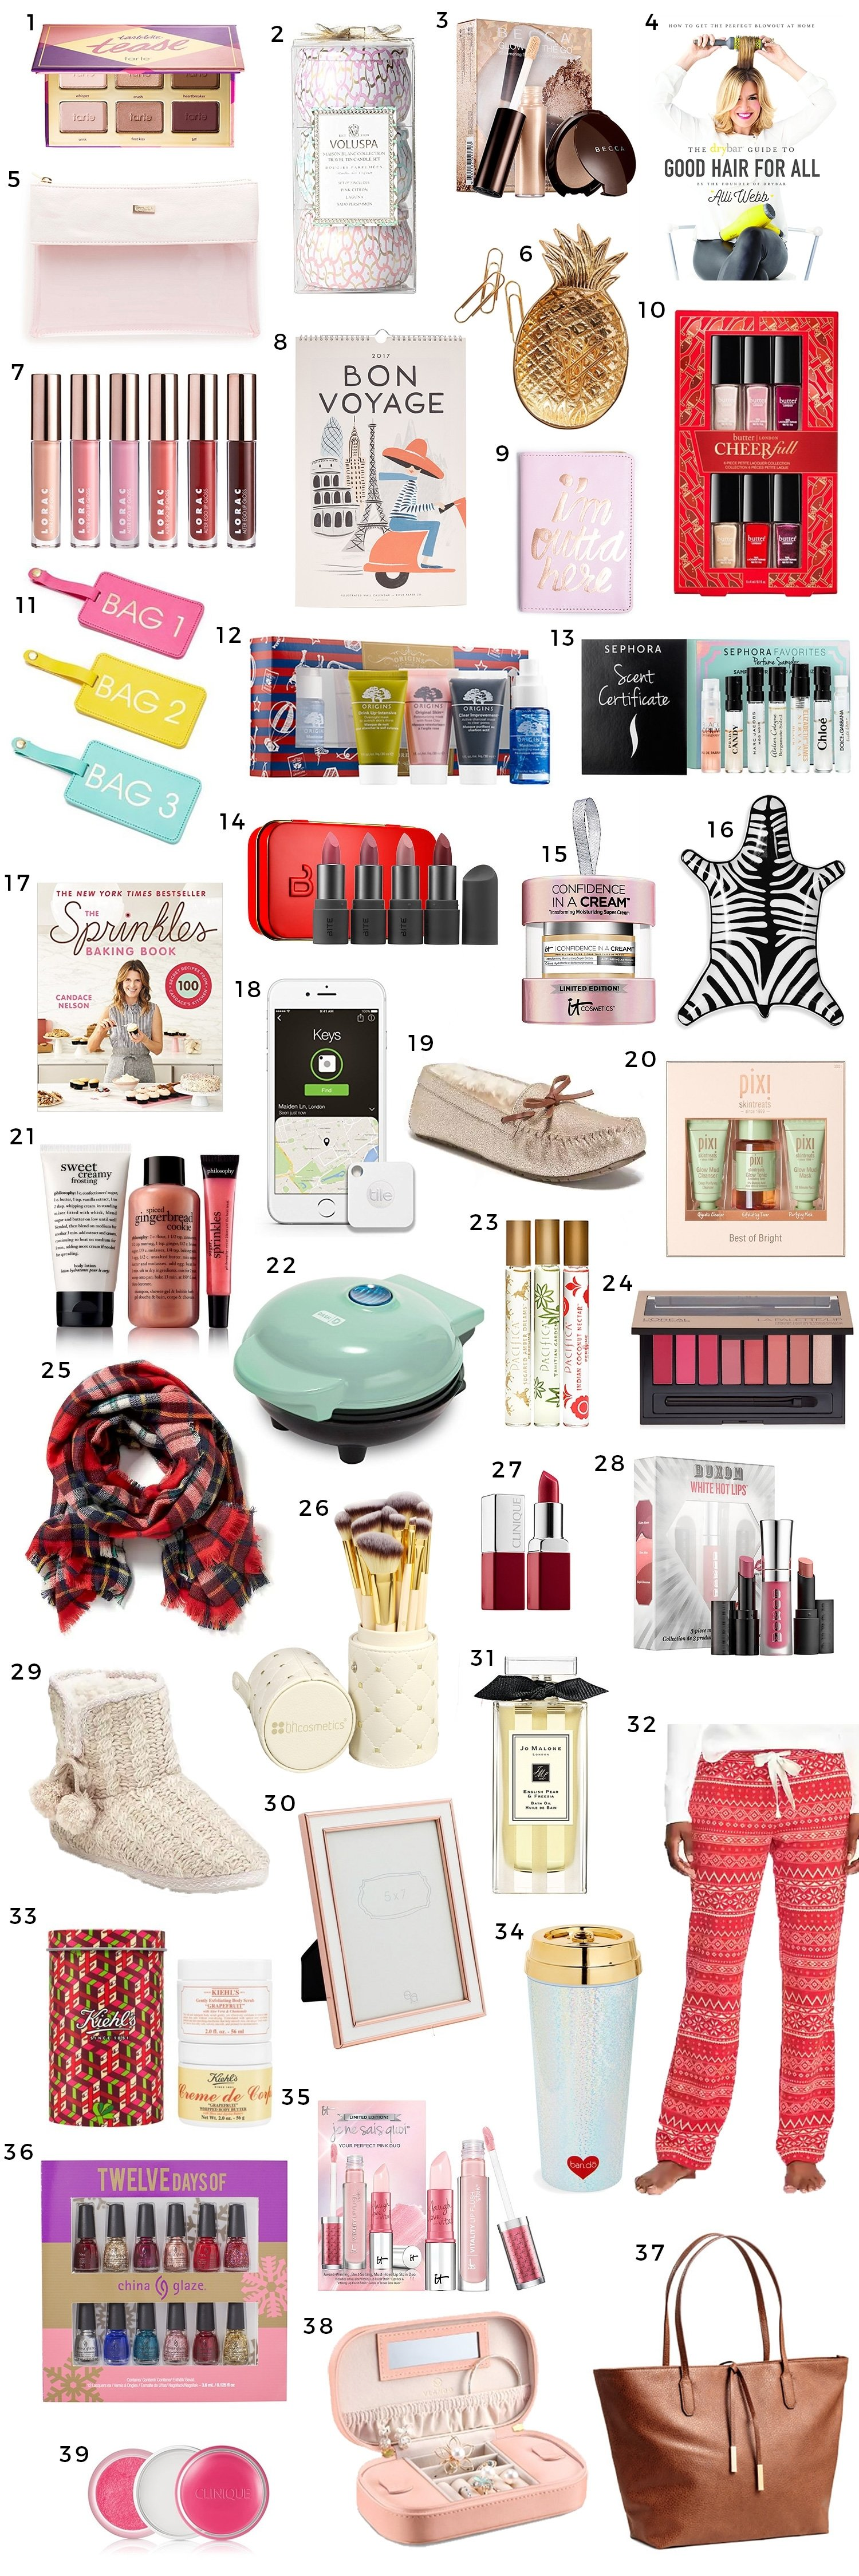 10 Spectacular Christmas Gift Ideas For Women Under 25 the best christmas gift ideas for women under 25 ashley brooke 13